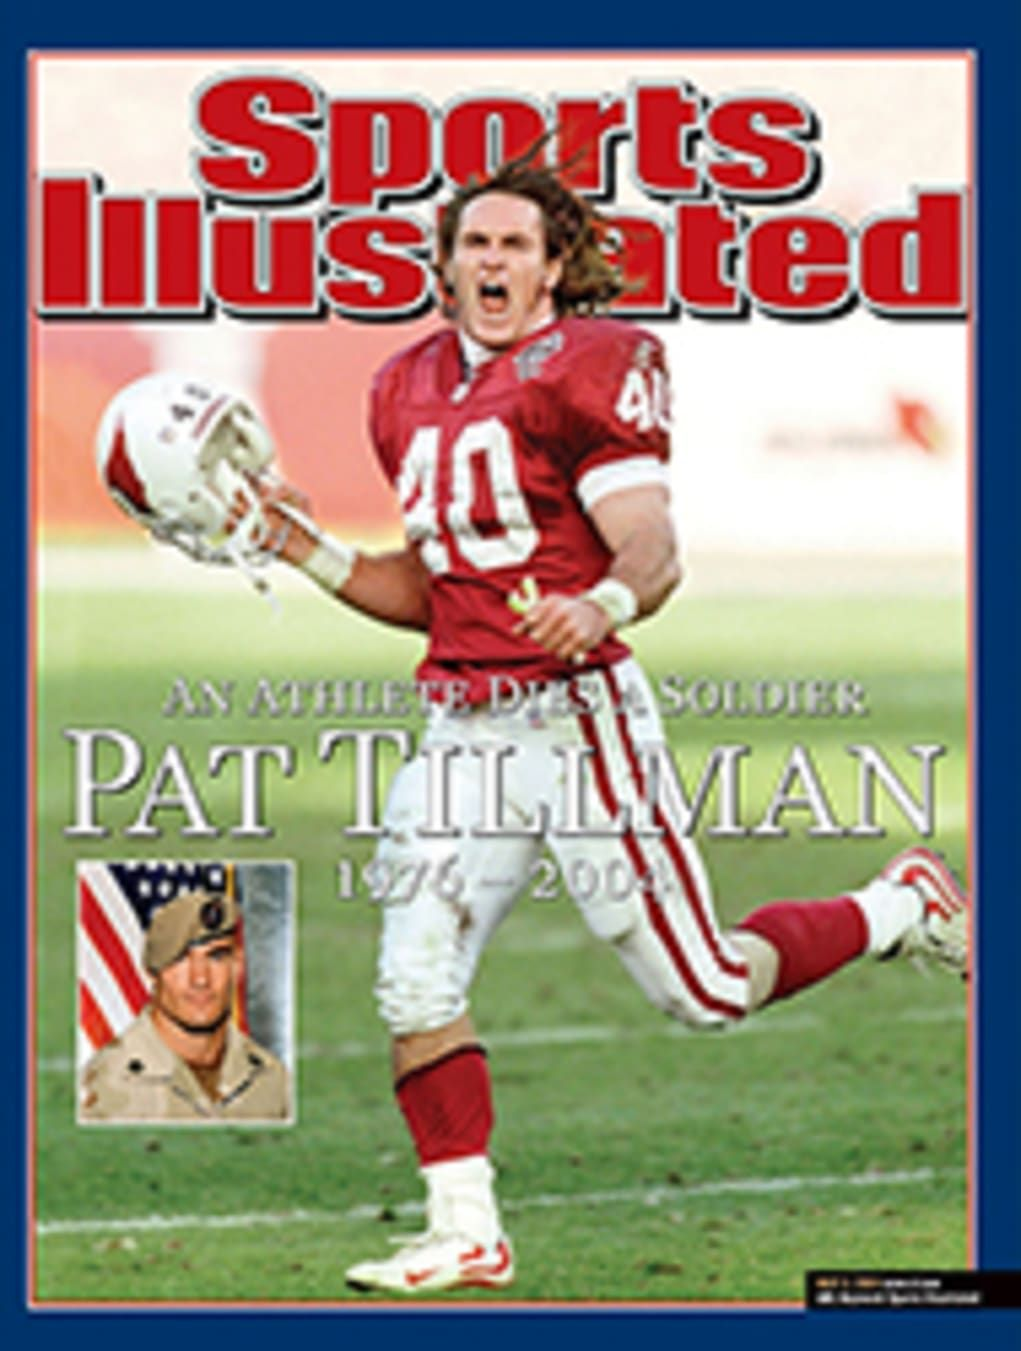 Code of Honor Sports Illustrated Vault in 2020 Sports